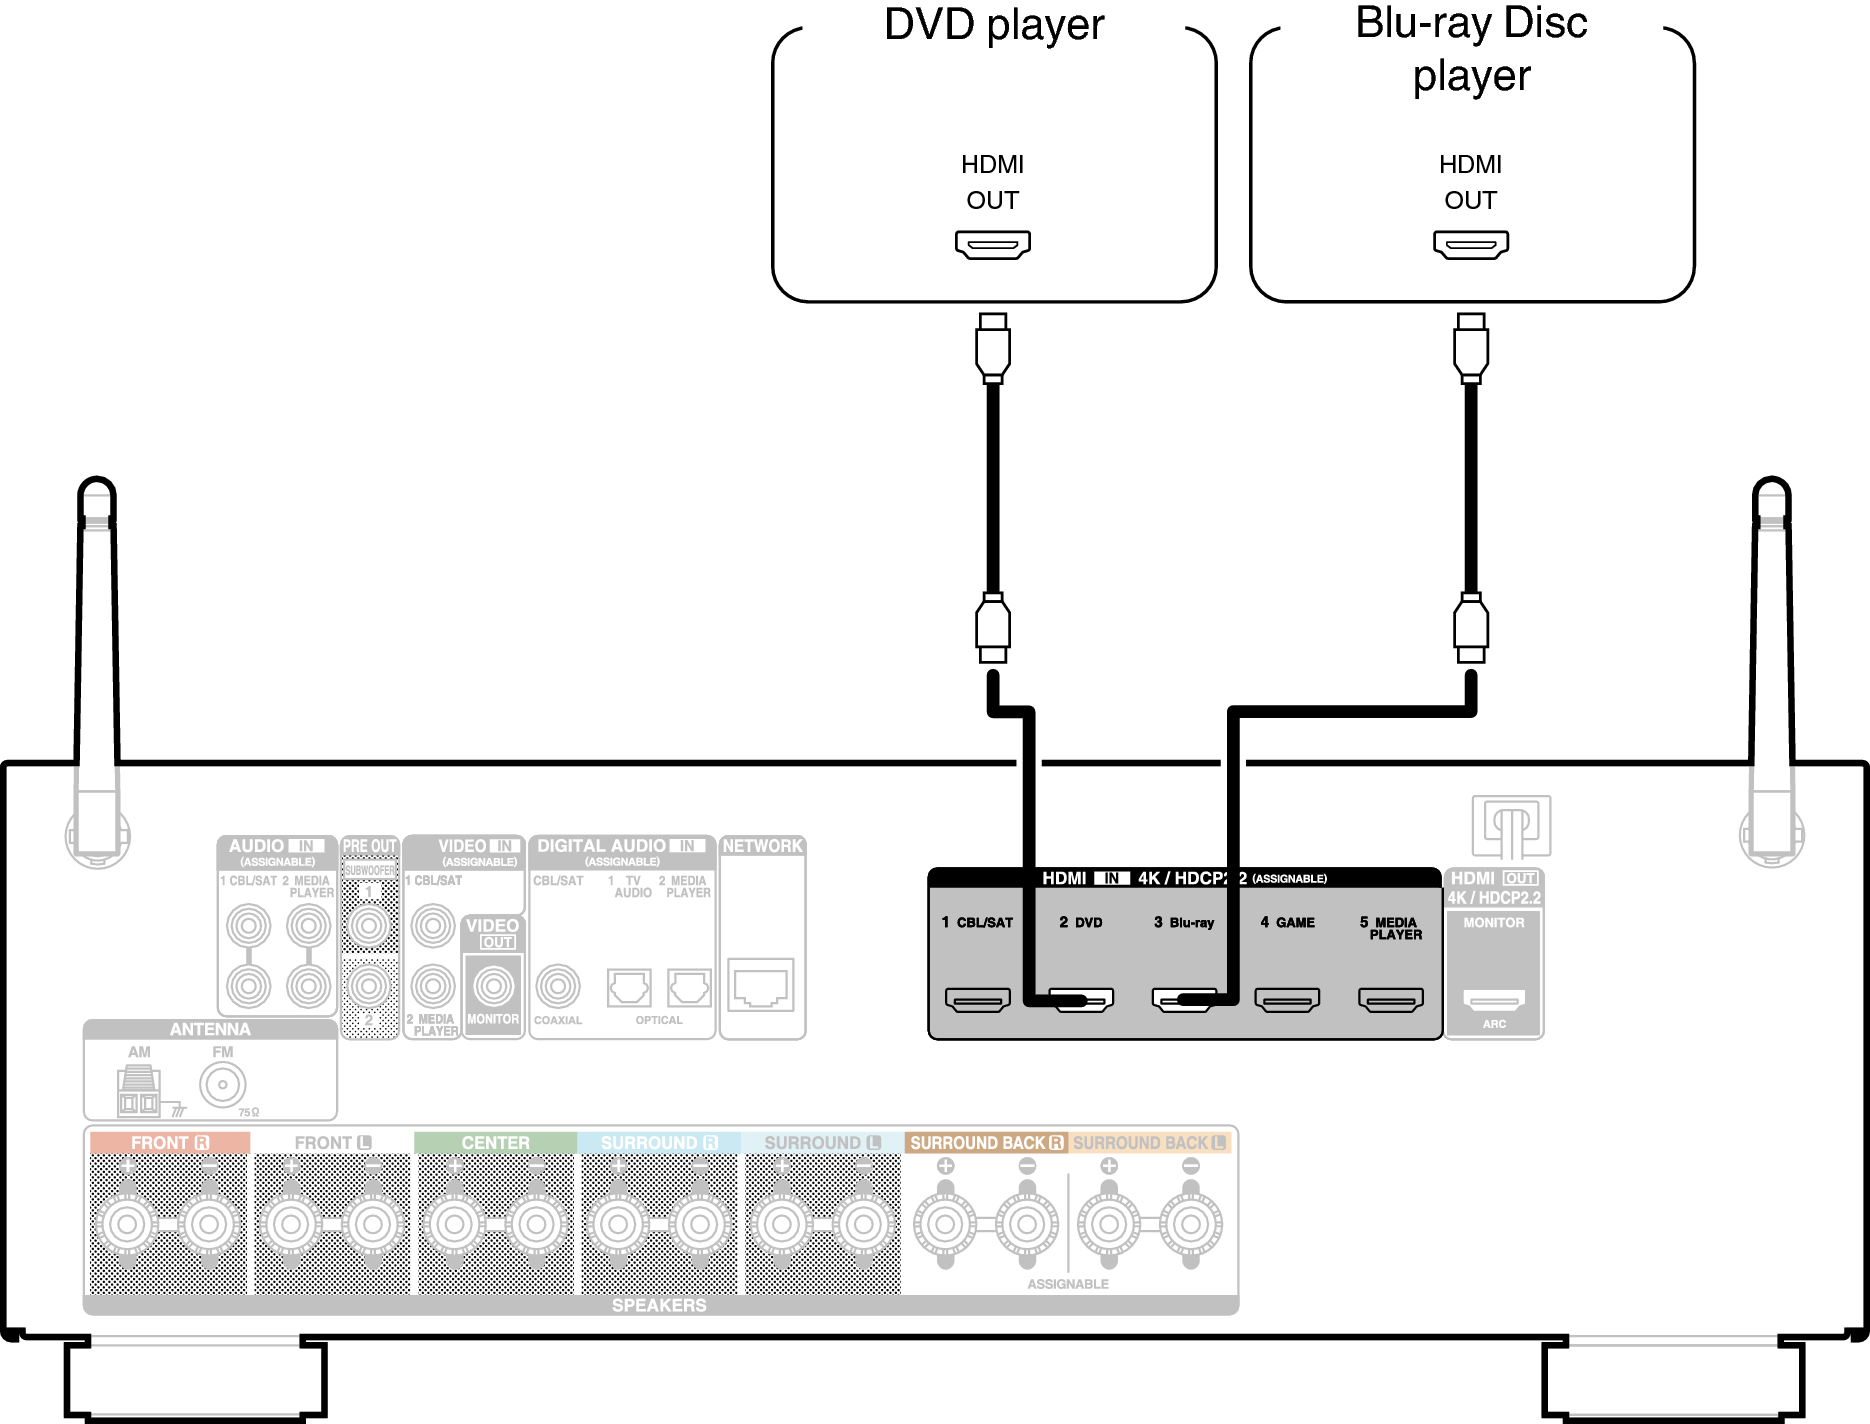 Connecting a DVD player or Blu-ray Disc player AVR-S730H